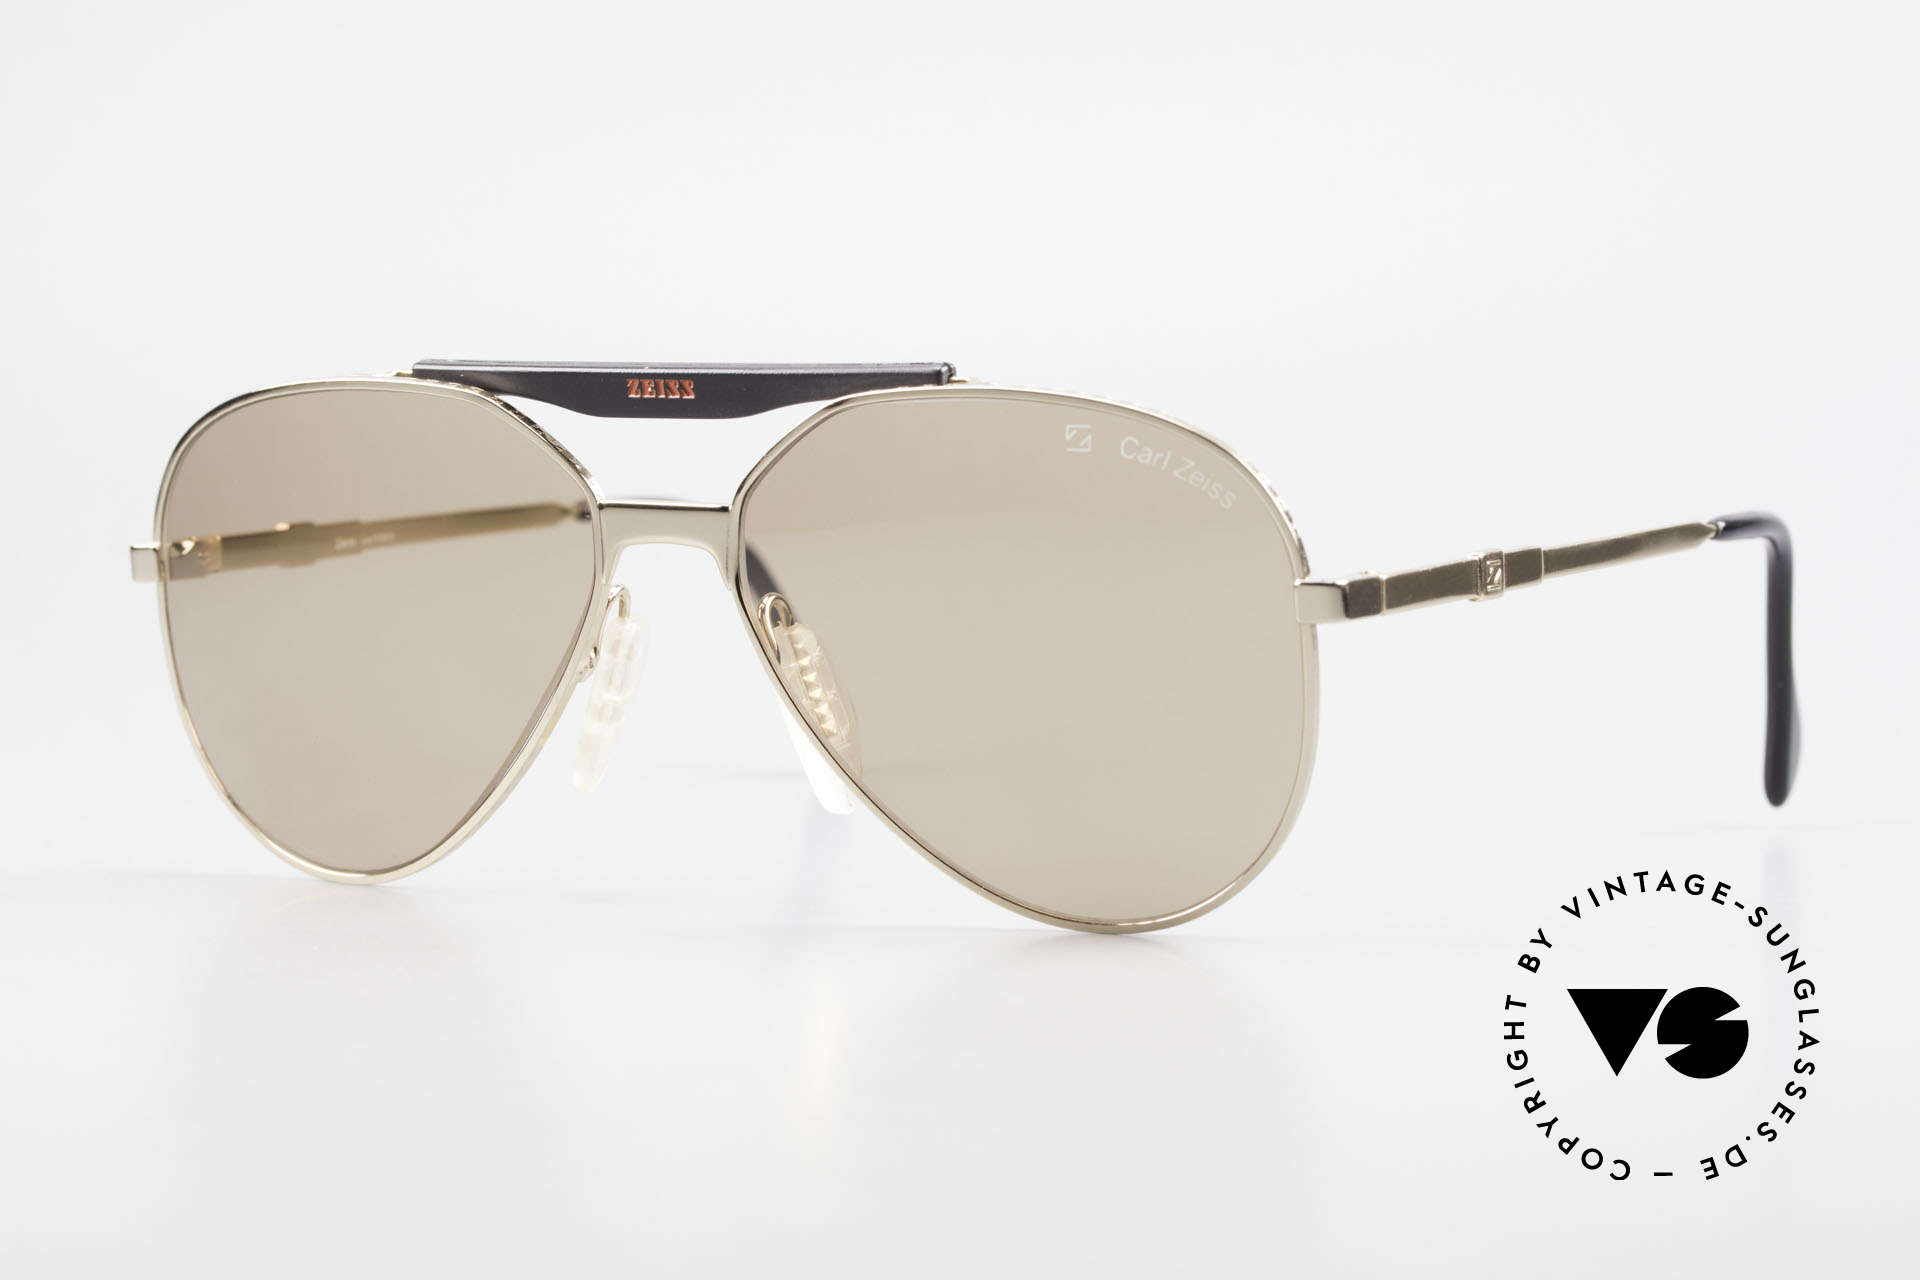 Zeiss 9931 Premium Vintage Sunglasses, old vintage 'premium sunglasses' by ZEISS, Germany, Made for Men